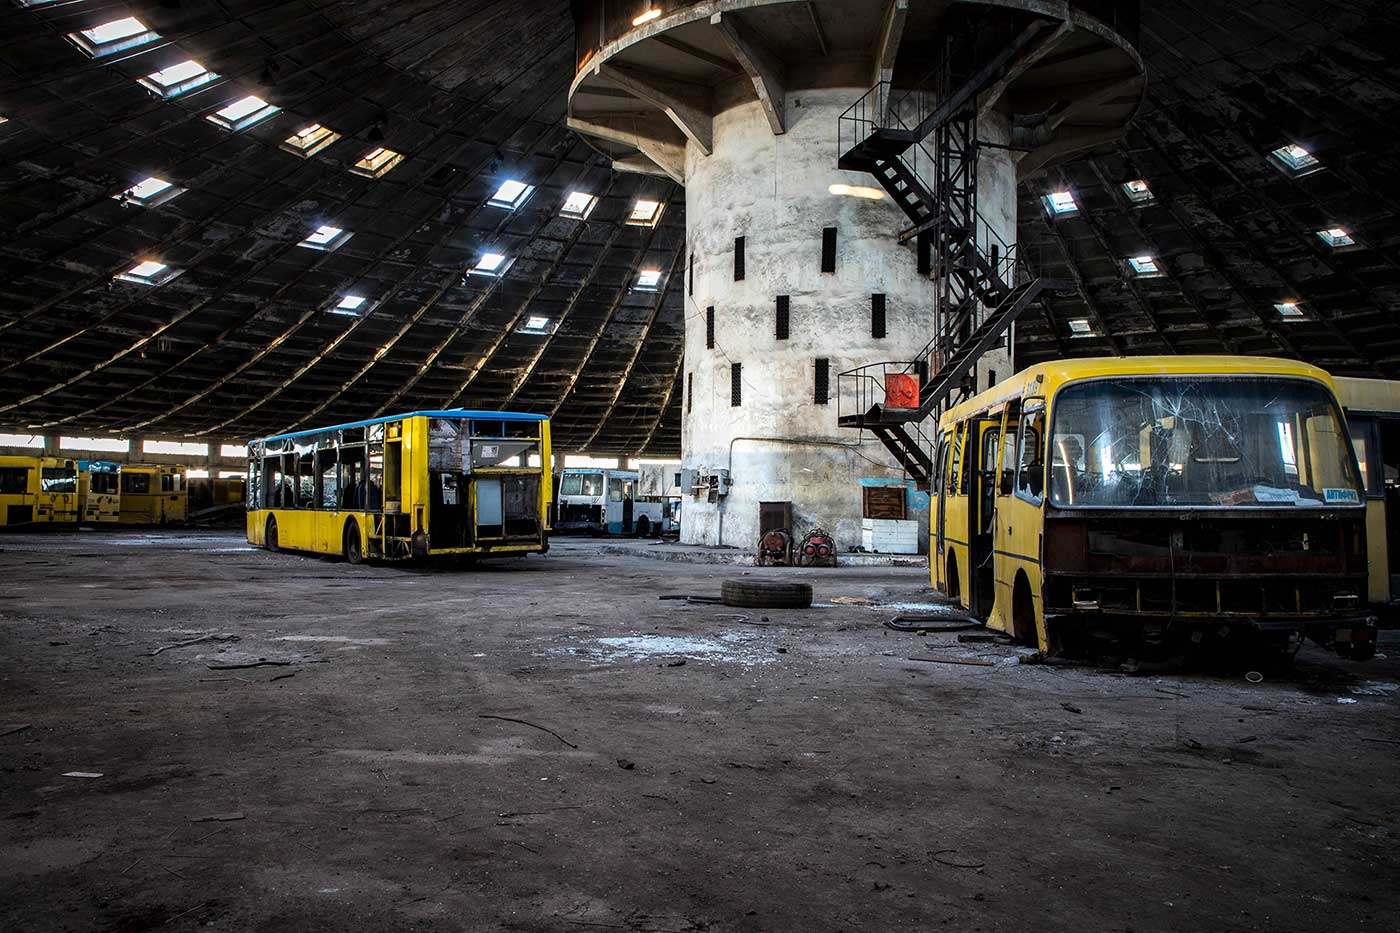 Attached to the 18m central support pillar, a metal staircase leads up to an observation platform. Autobus Park №7: the abandoned bus depot in Kyiv, Ukraine.